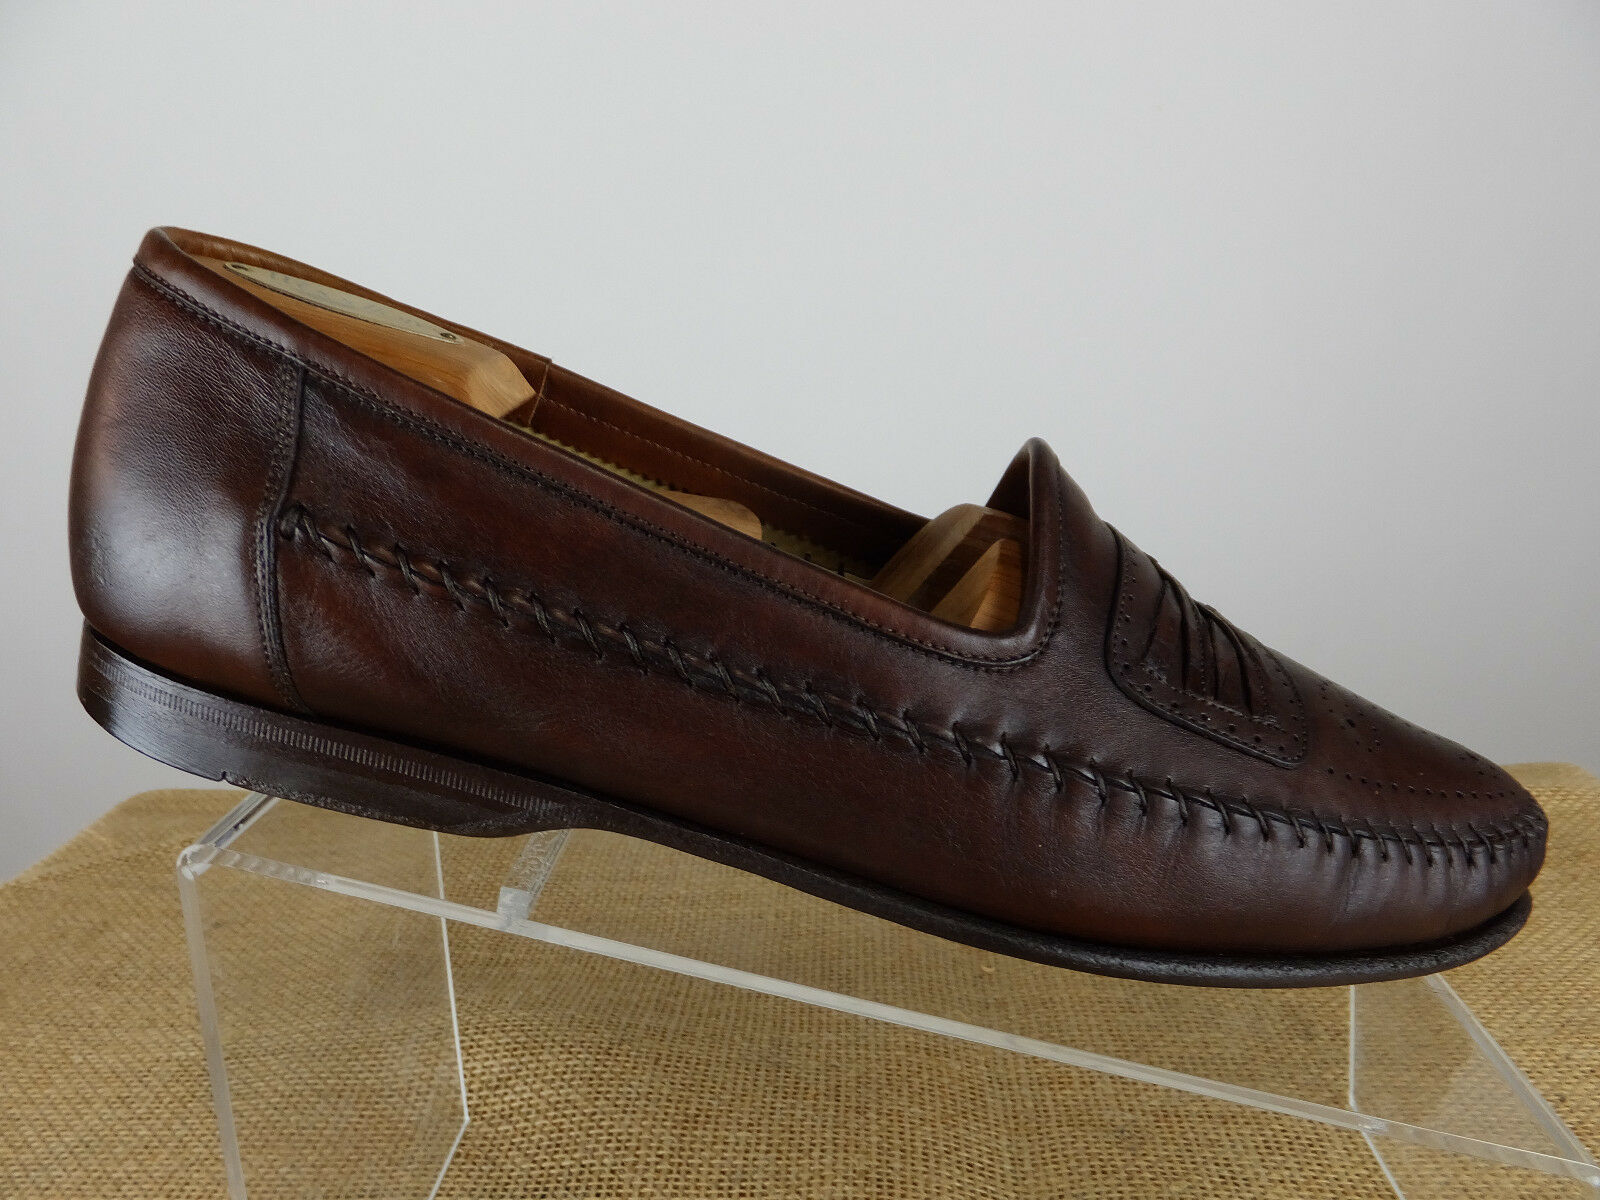 SANTONI Gator Leather Combo Medallion braun braun braun Venetian schuhe Men US 11.5 M IT 10.5 2ba293